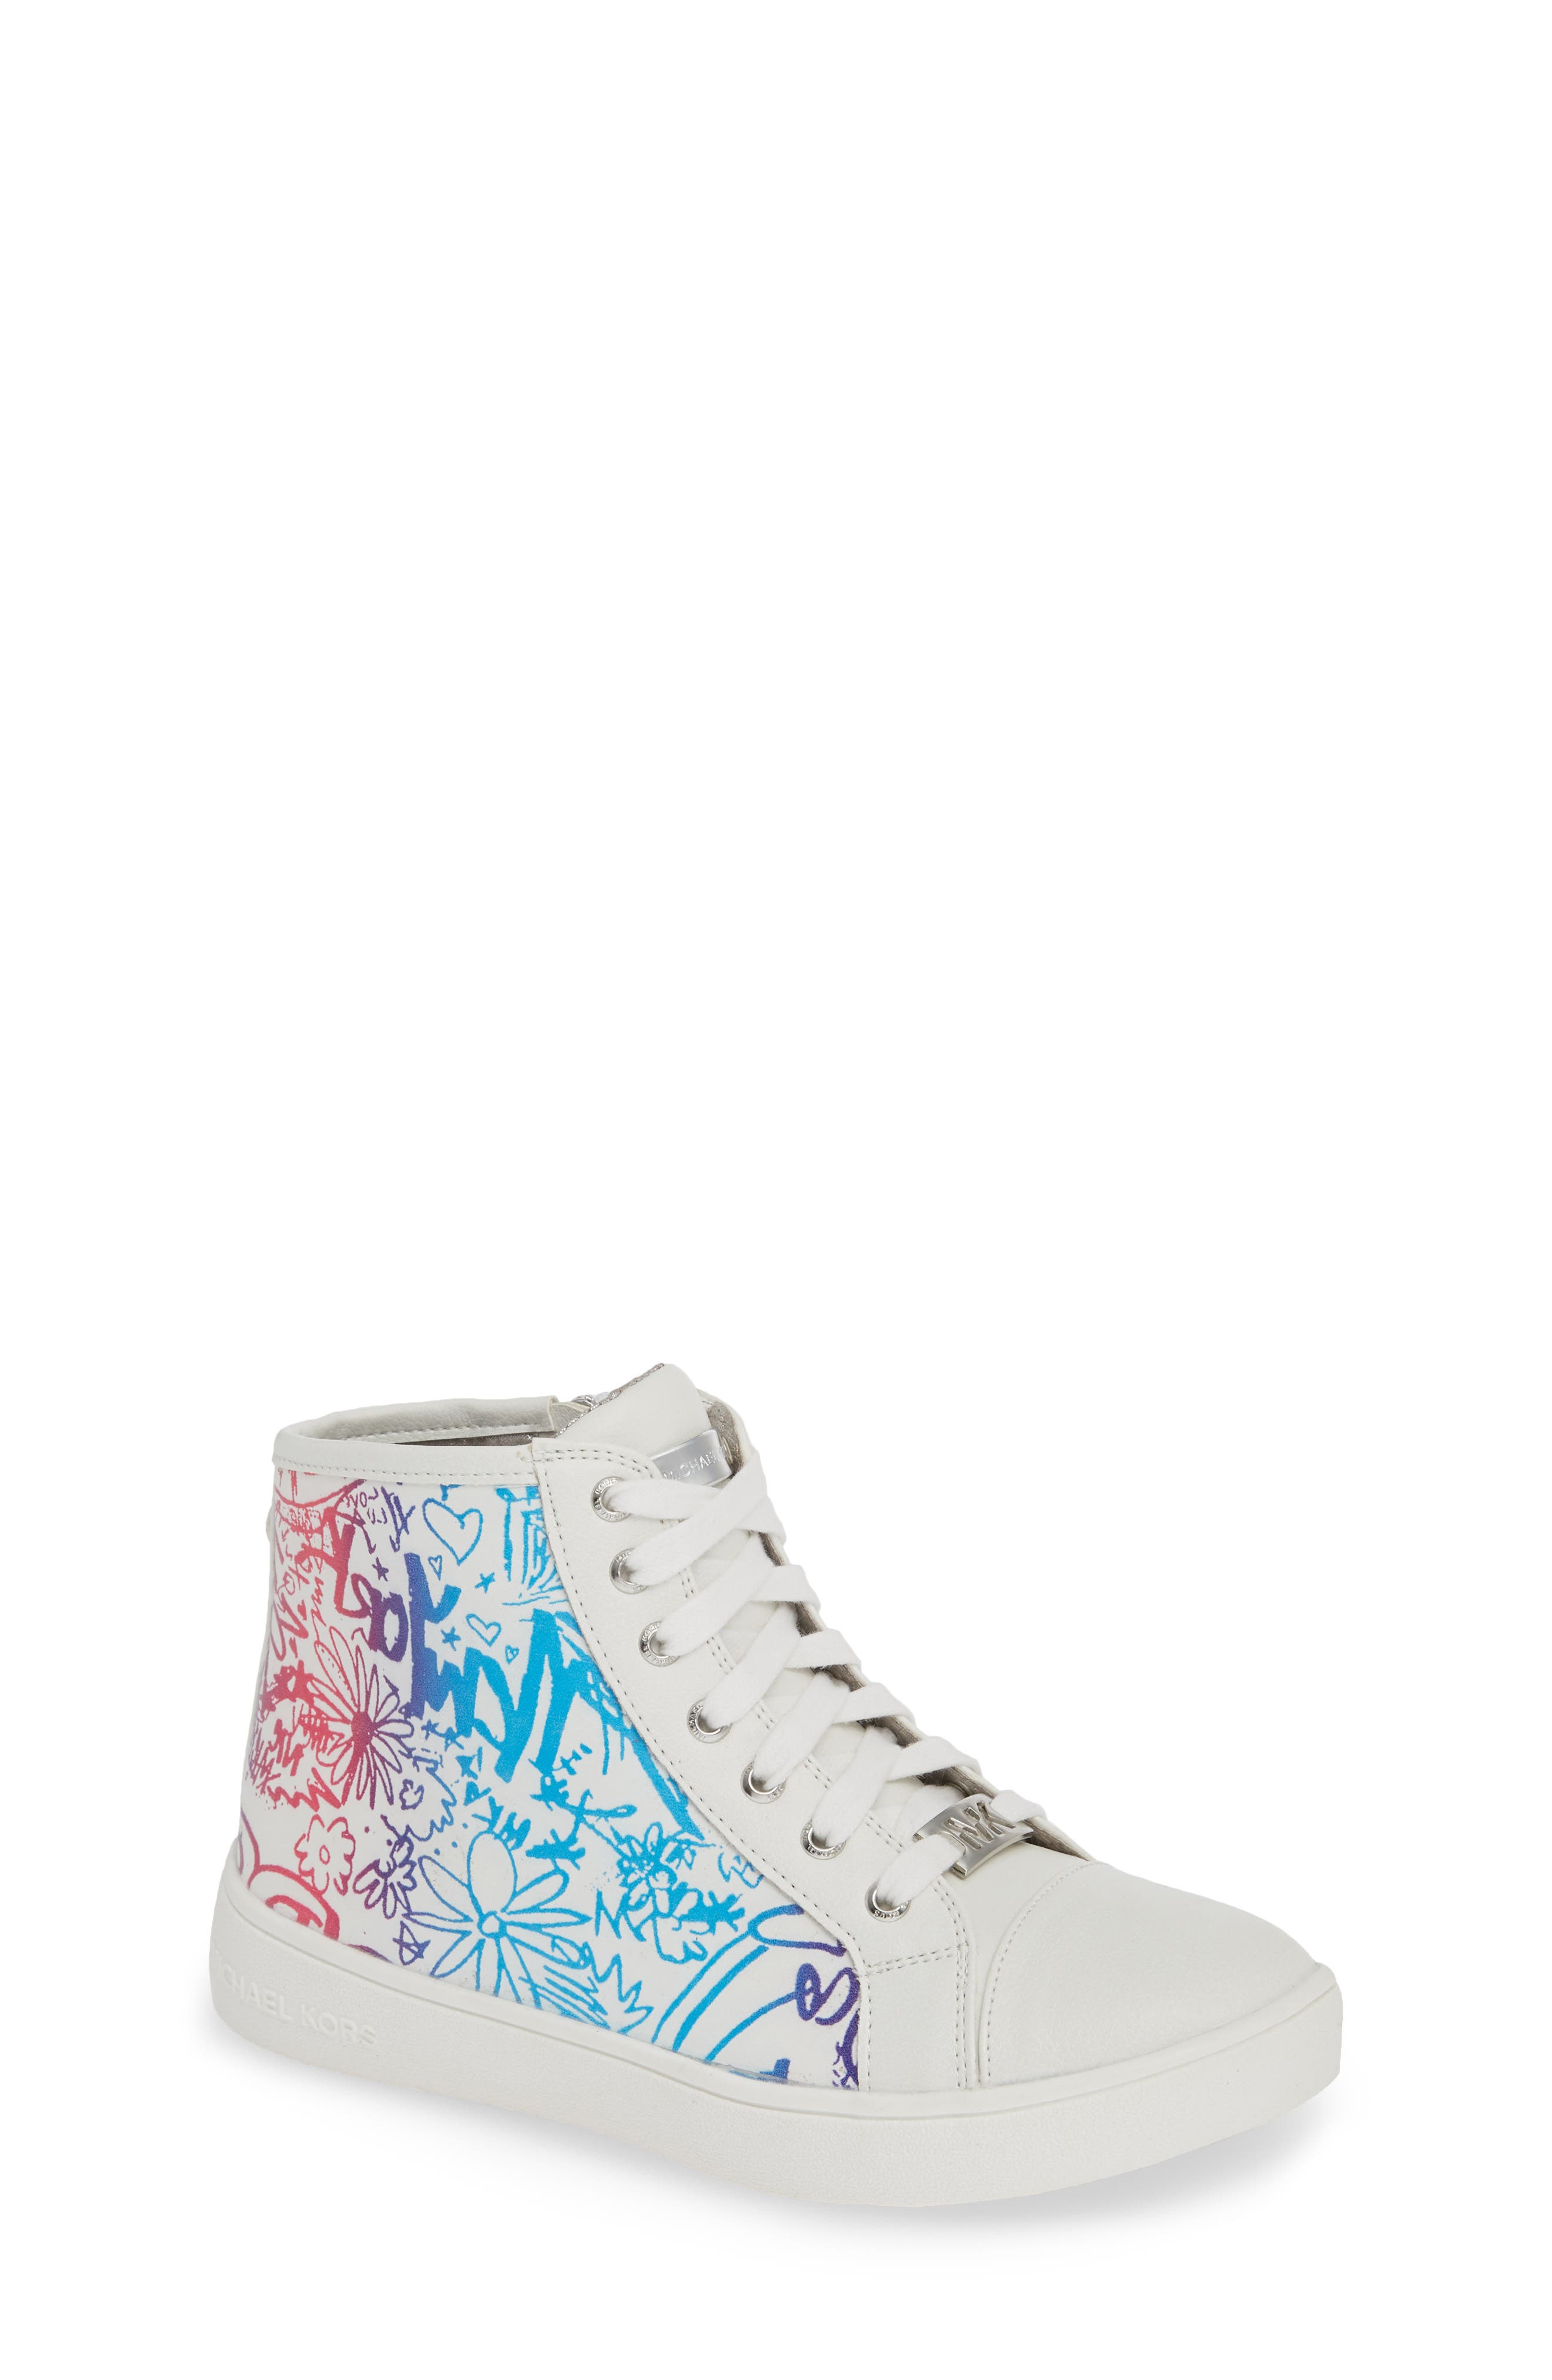 Ivy Spectra High Top Sneaker,                             Main thumbnail 1, color,                             WHITE MULTI